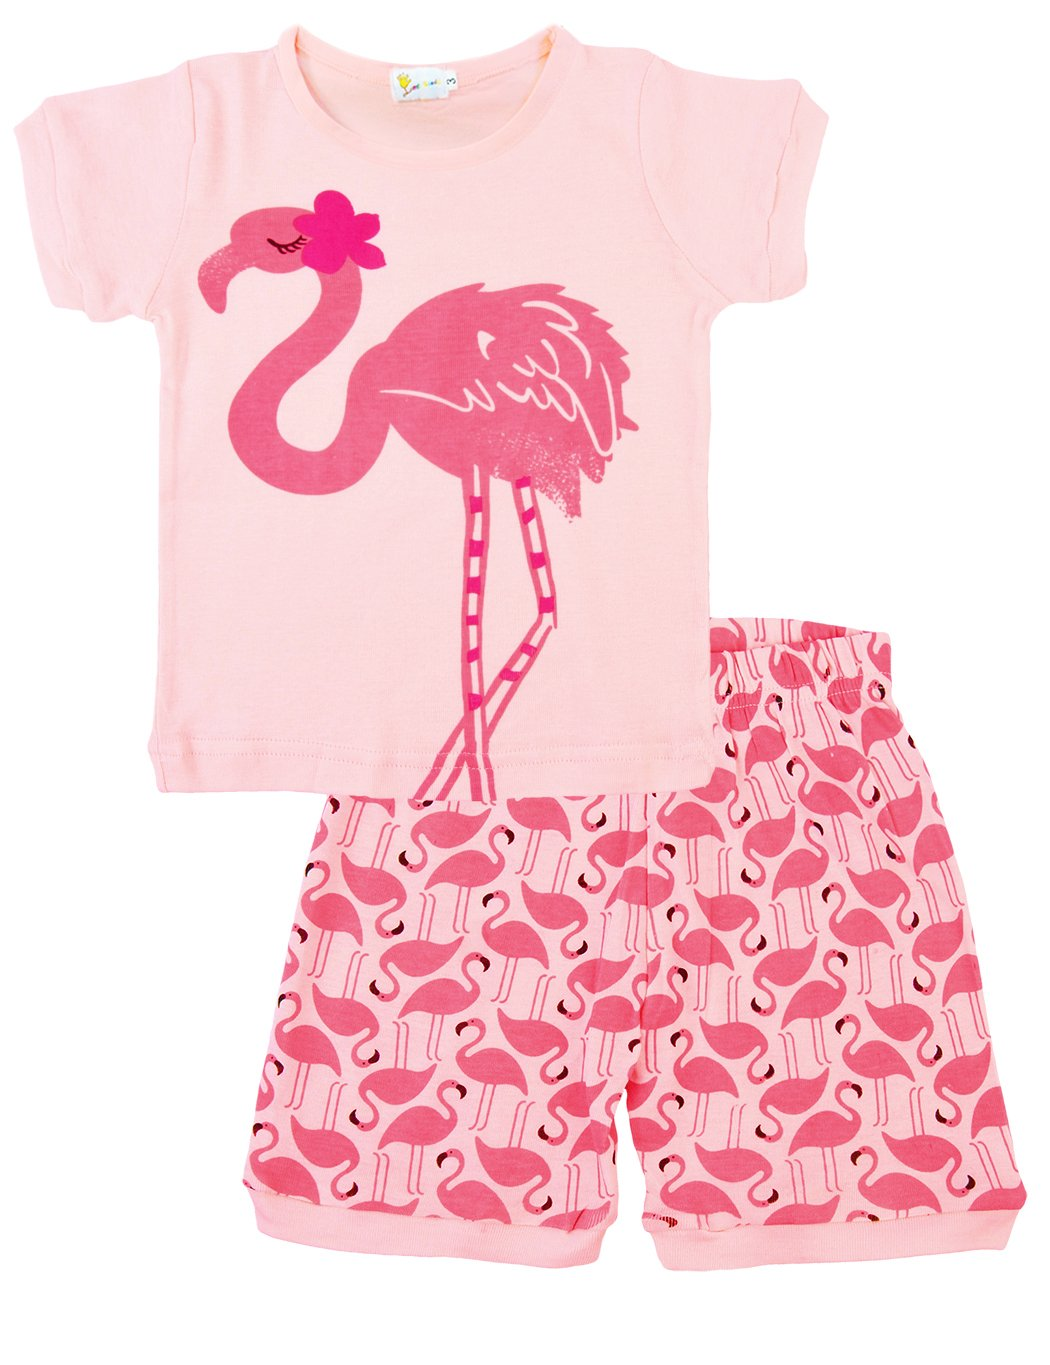 Dhasiue Little Girls Short Set Summer Cotton Clothing Set Cute Flamingo Pattern Outfit for Toddler Kid